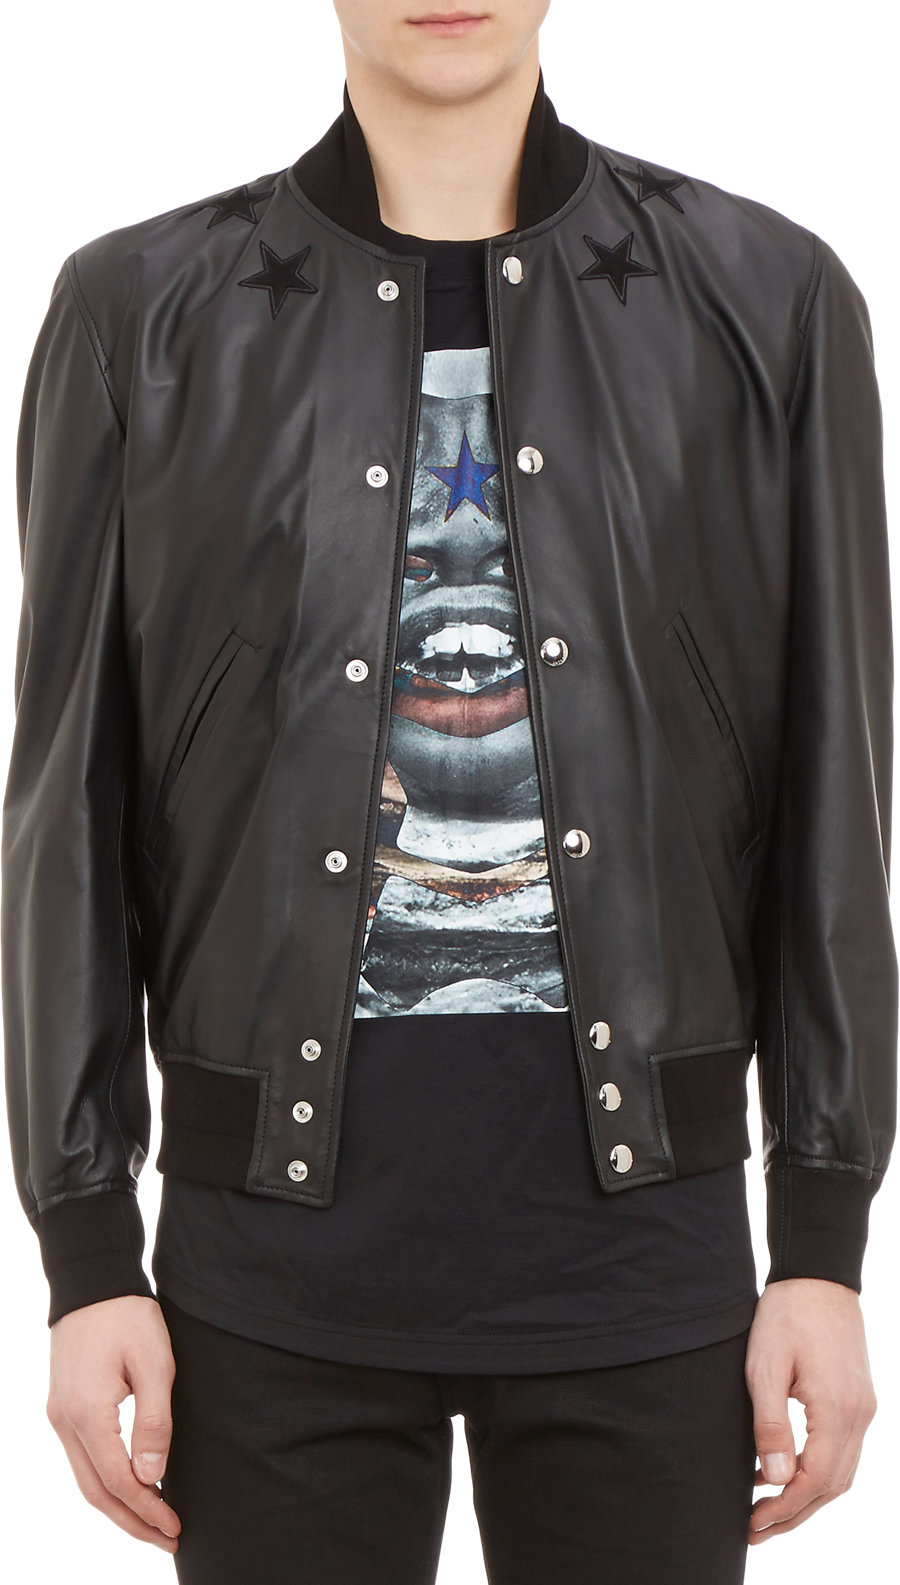 Givenchy Leather Baseball Jacket In Black For Men | Lyst